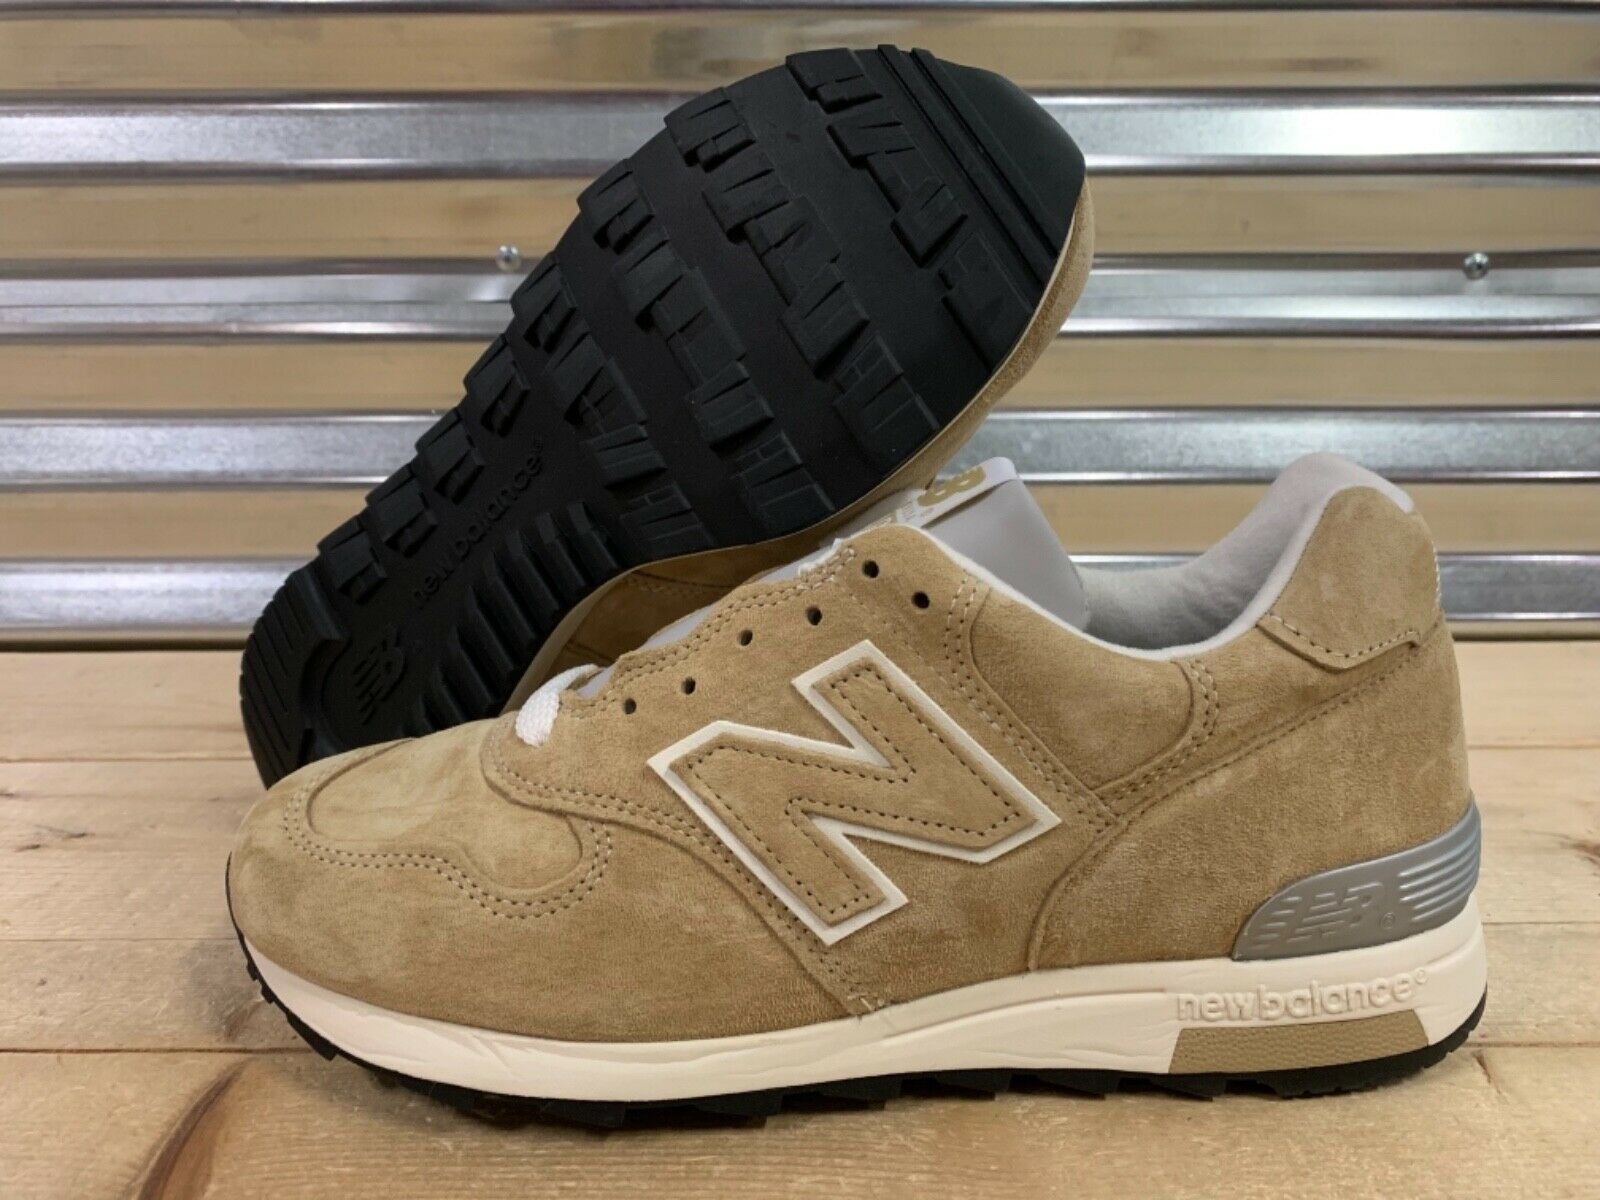 New Balance 1400 Classic Running shoes Beige Khaki Brown Suede USA SZ (M1400BE)